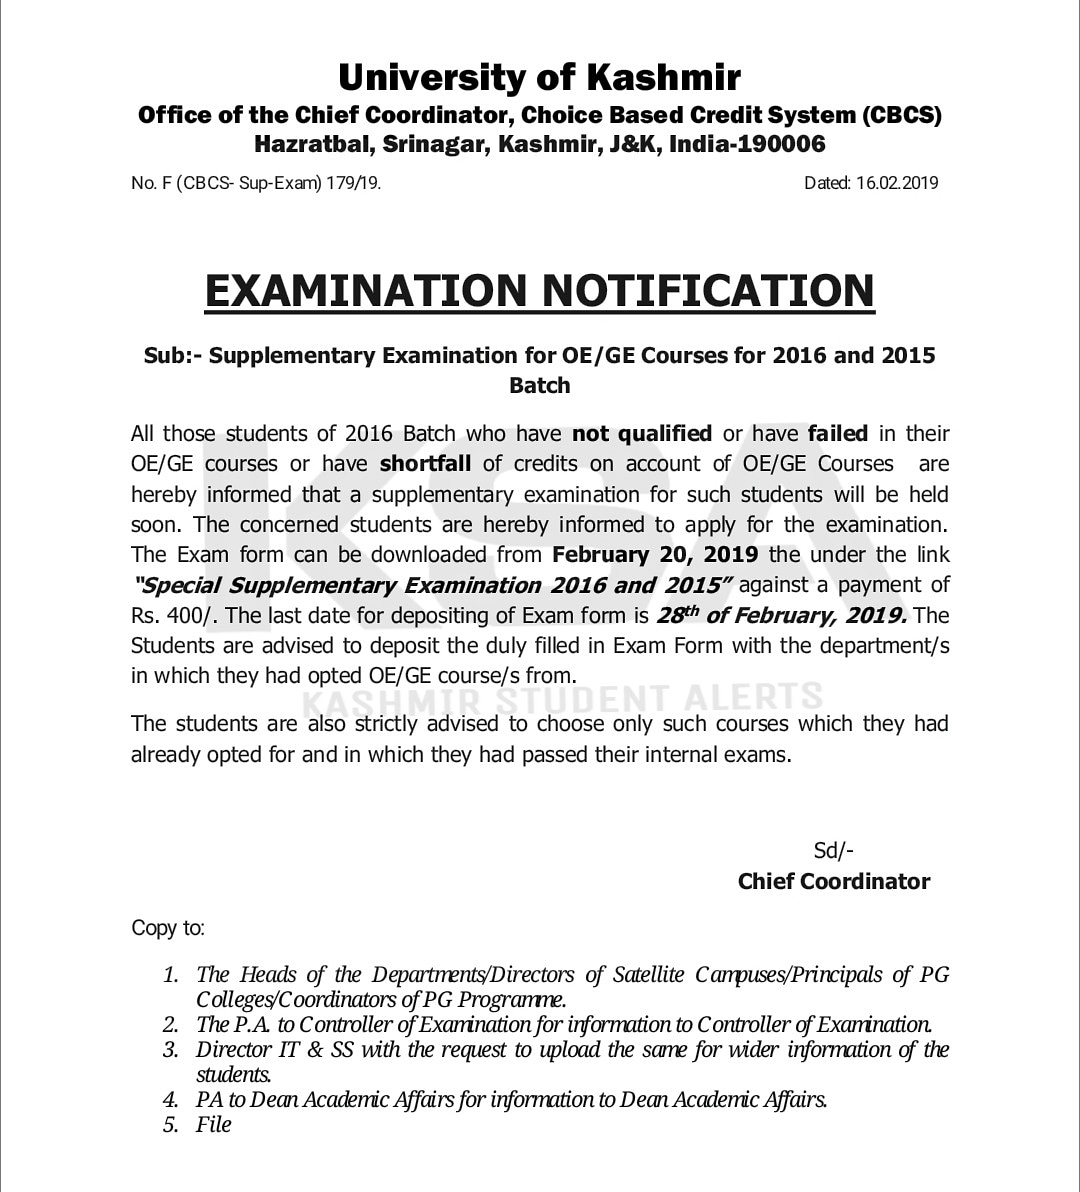 Kashmir University | Supplementary Examination for OE/GE Courses for